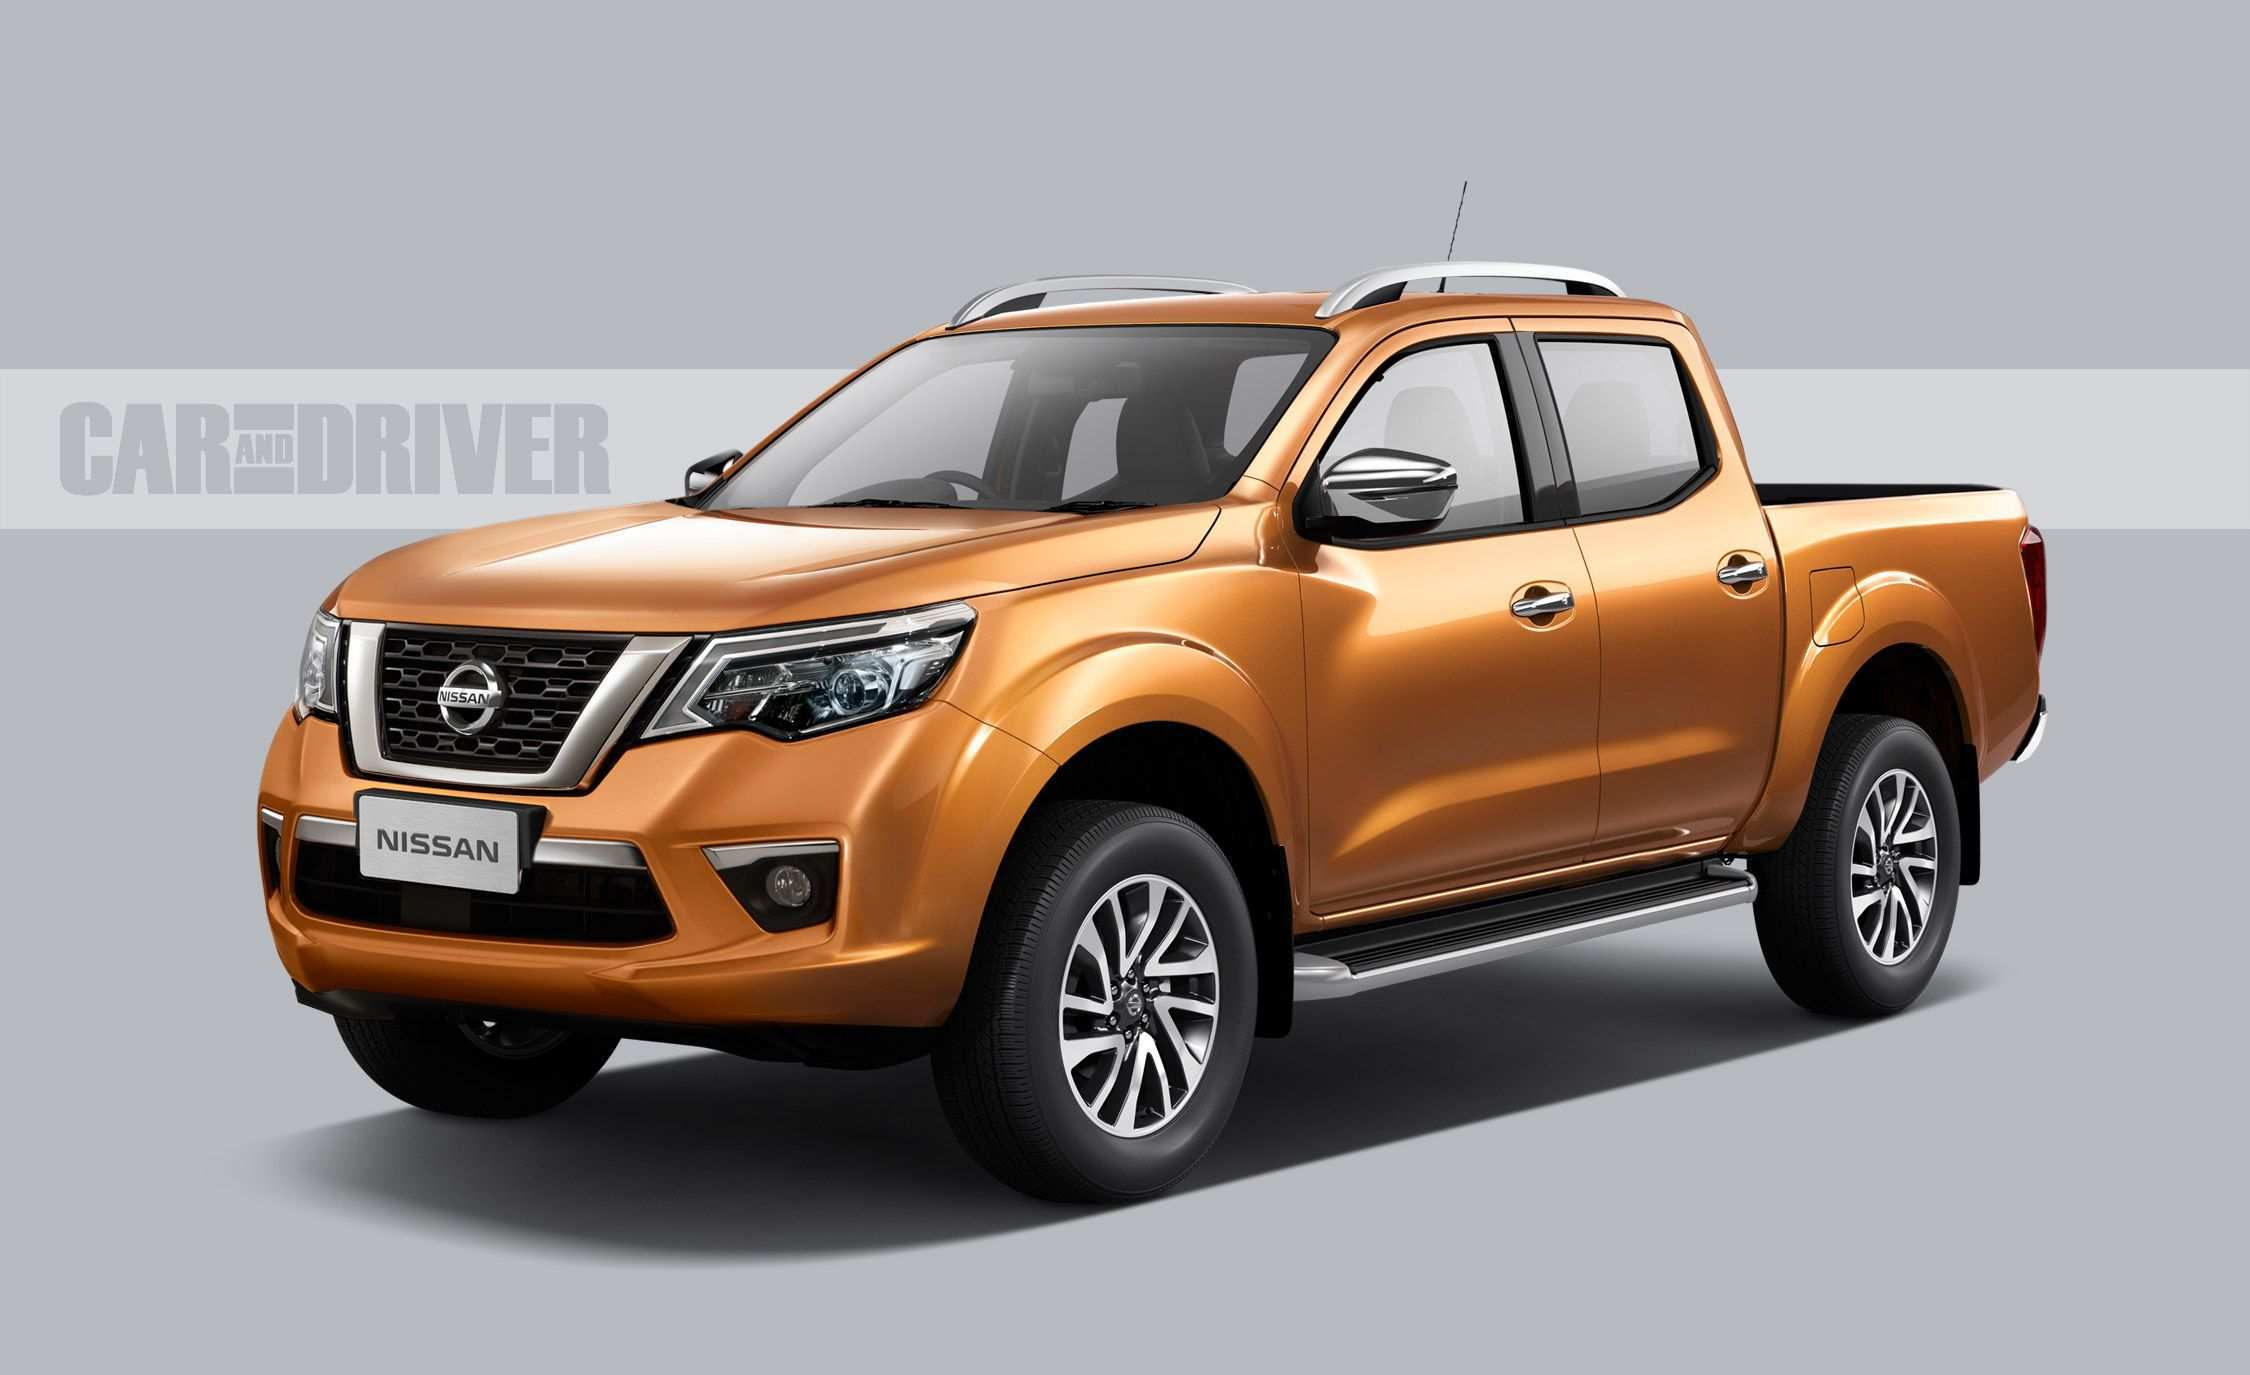 60 All New 2020 Nissan Frontier New Concept Research New for 2020 Nissan Frontier New Concept